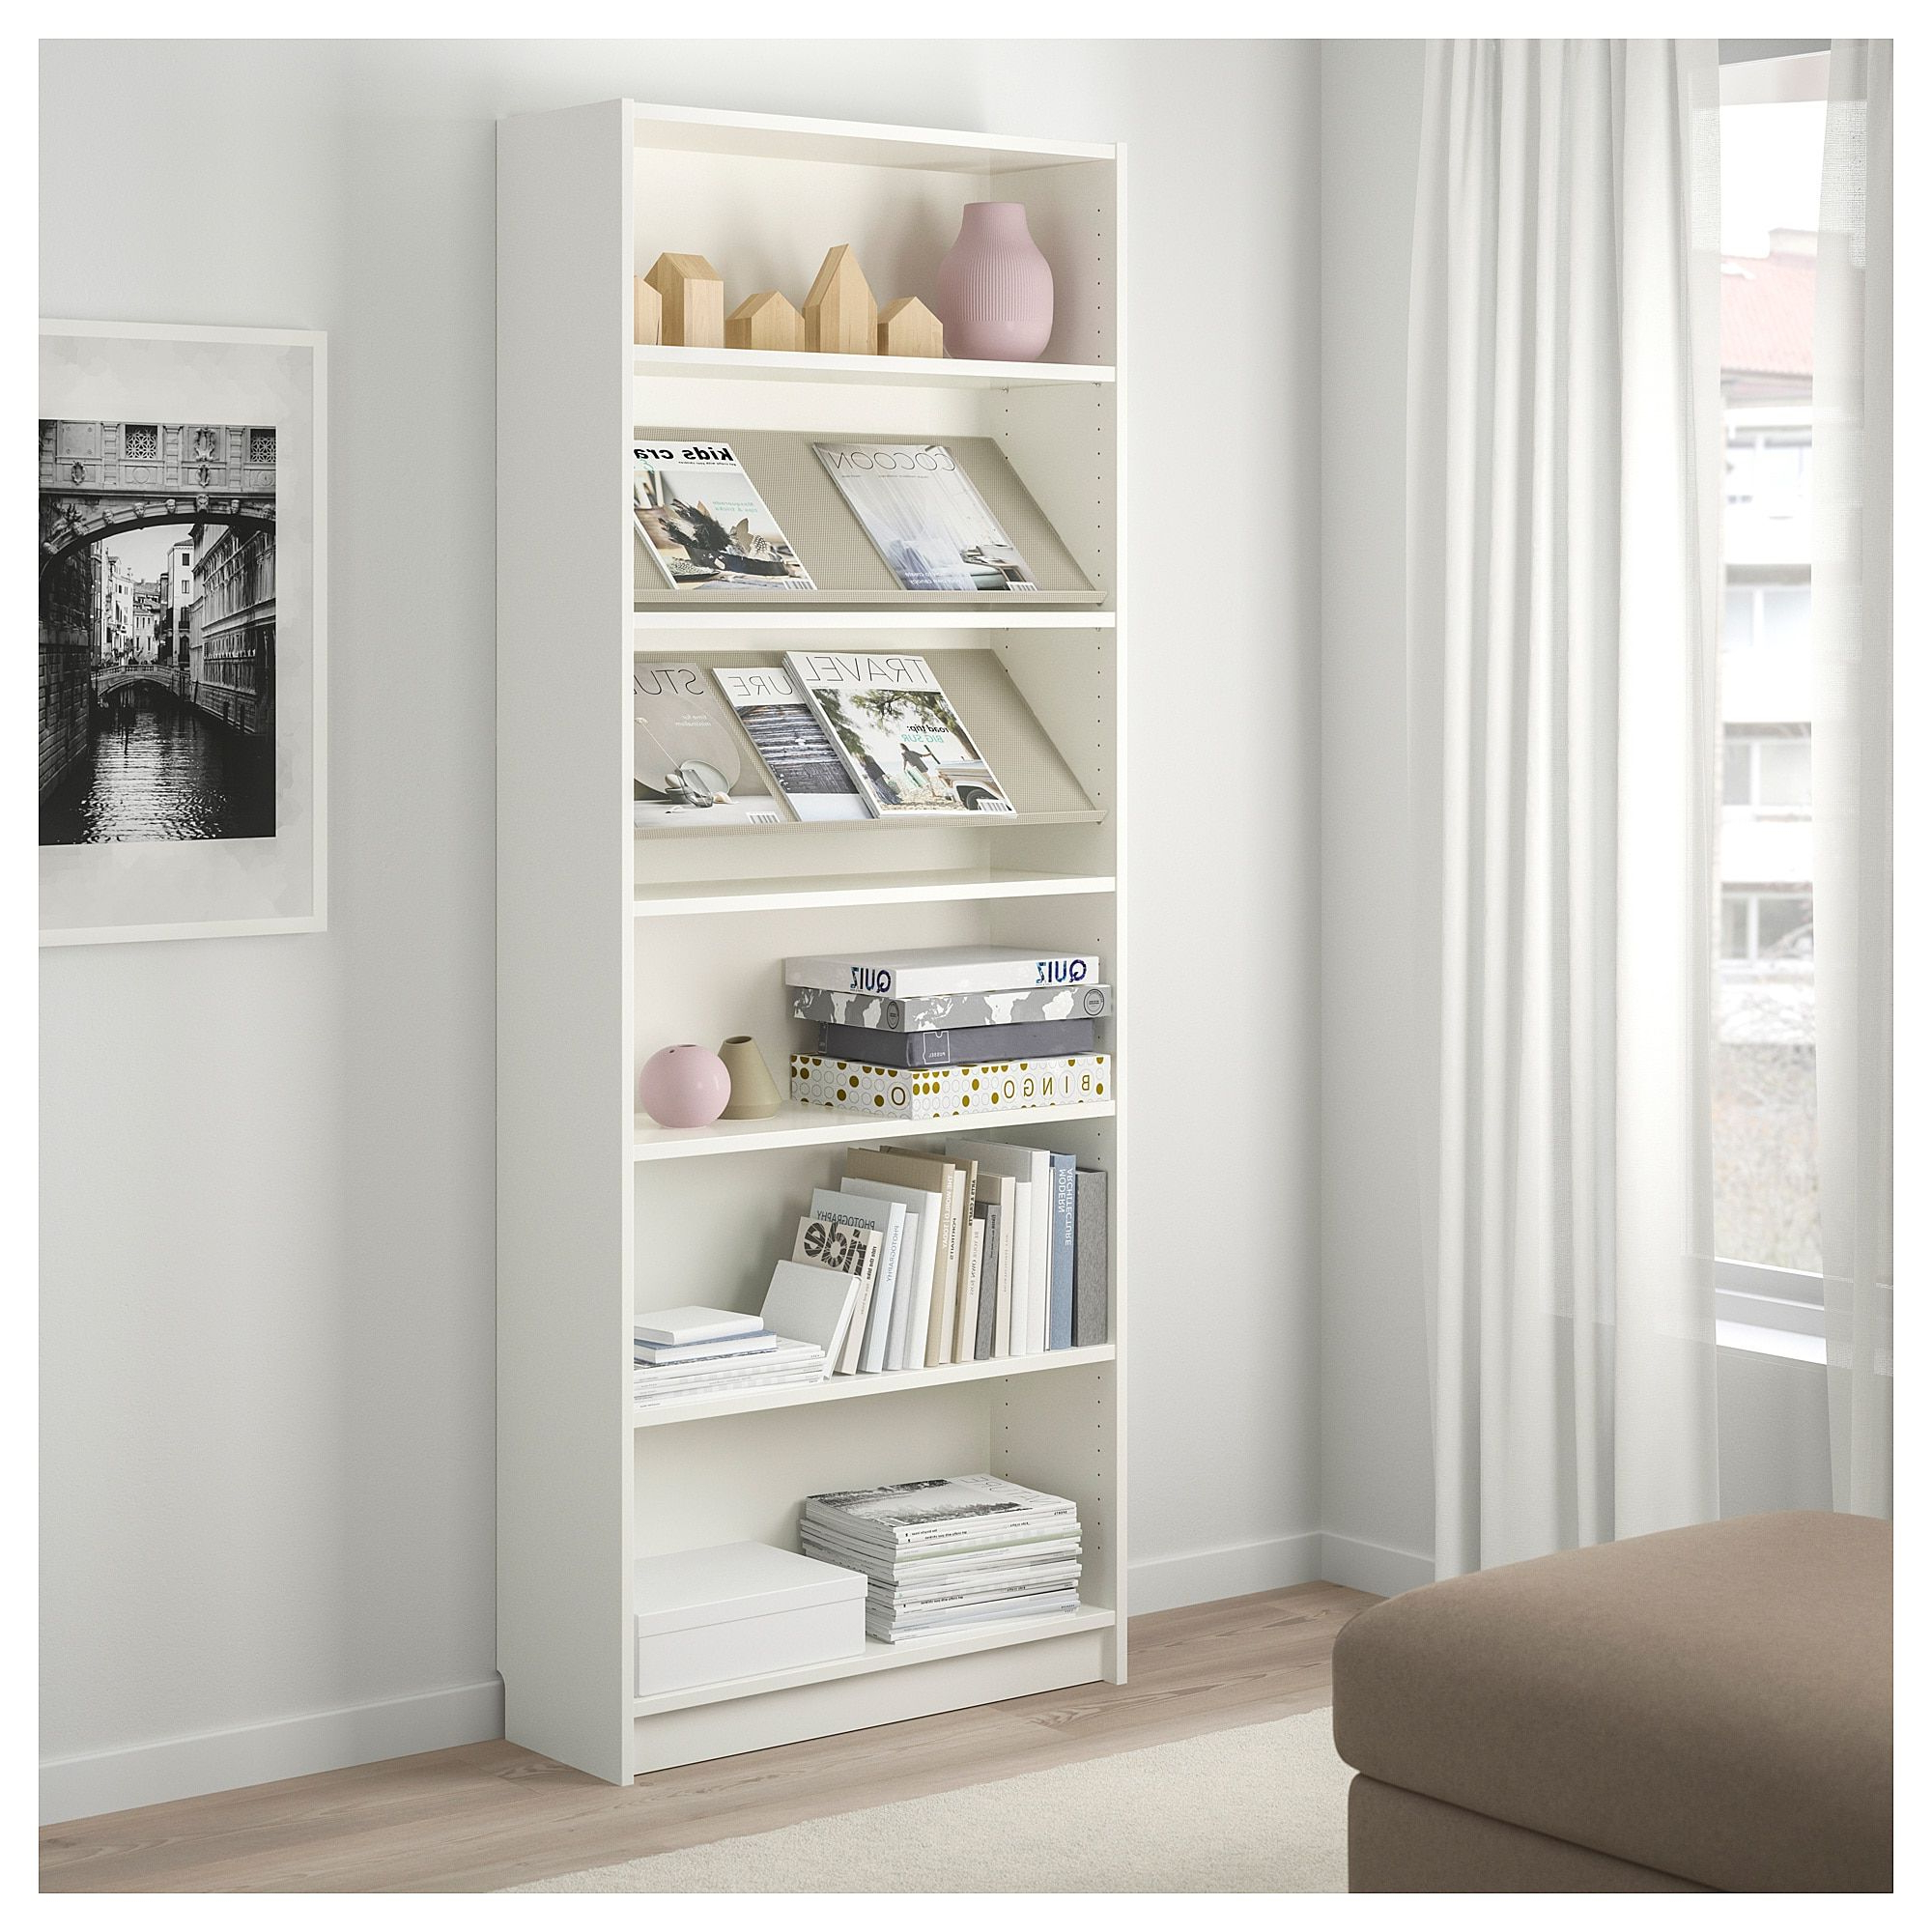 Newest Morrell Standard Bookcases With Ikea – Billy / Bottna Bookcase With Display Shelf White (View 14 of 20)